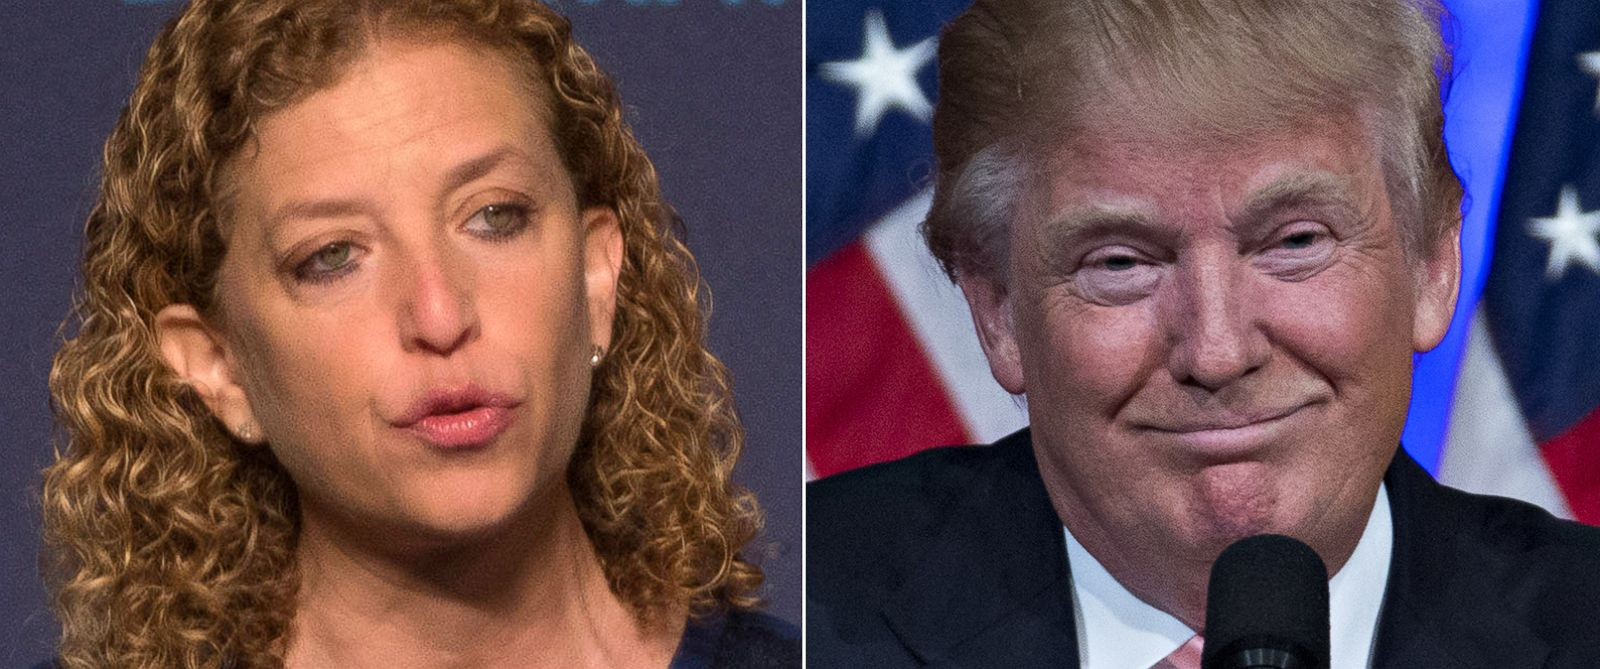 PHOTO: Pictured (L-R) are Debbie Wasserman Schultz in Washington, Oct. 23, 2015 and Donald Trump in Palm Beach, Fla., March 15, 2016.